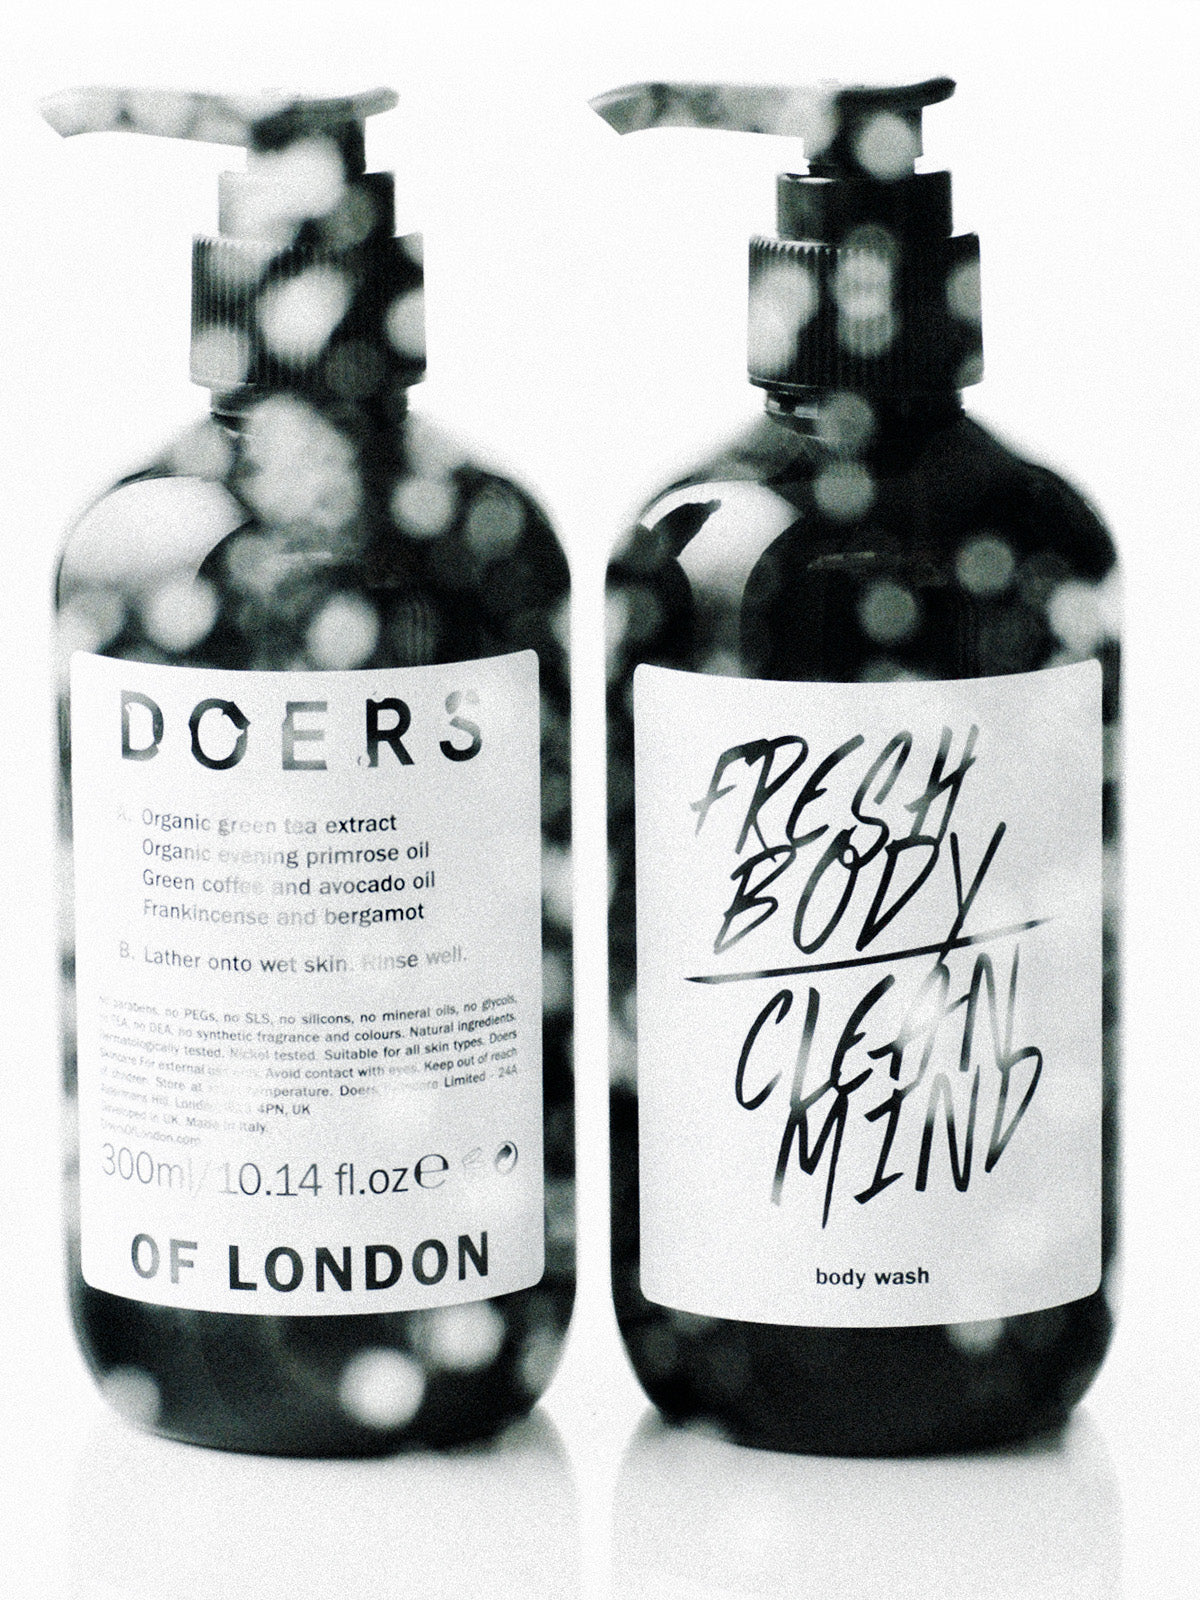 Doers of London Body Wash 300ml front and back